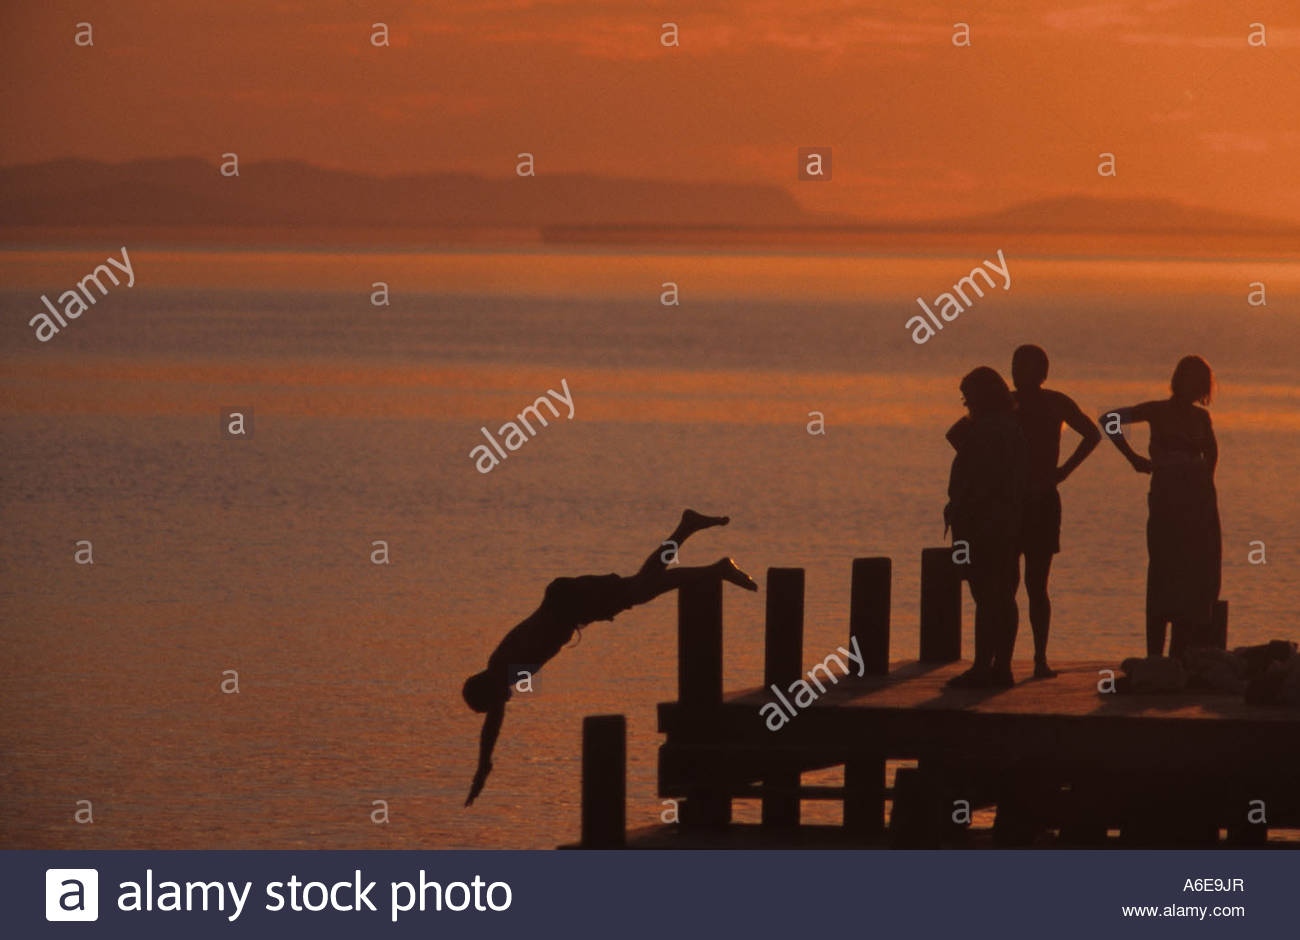 Children diving from at jetty - Stock Image